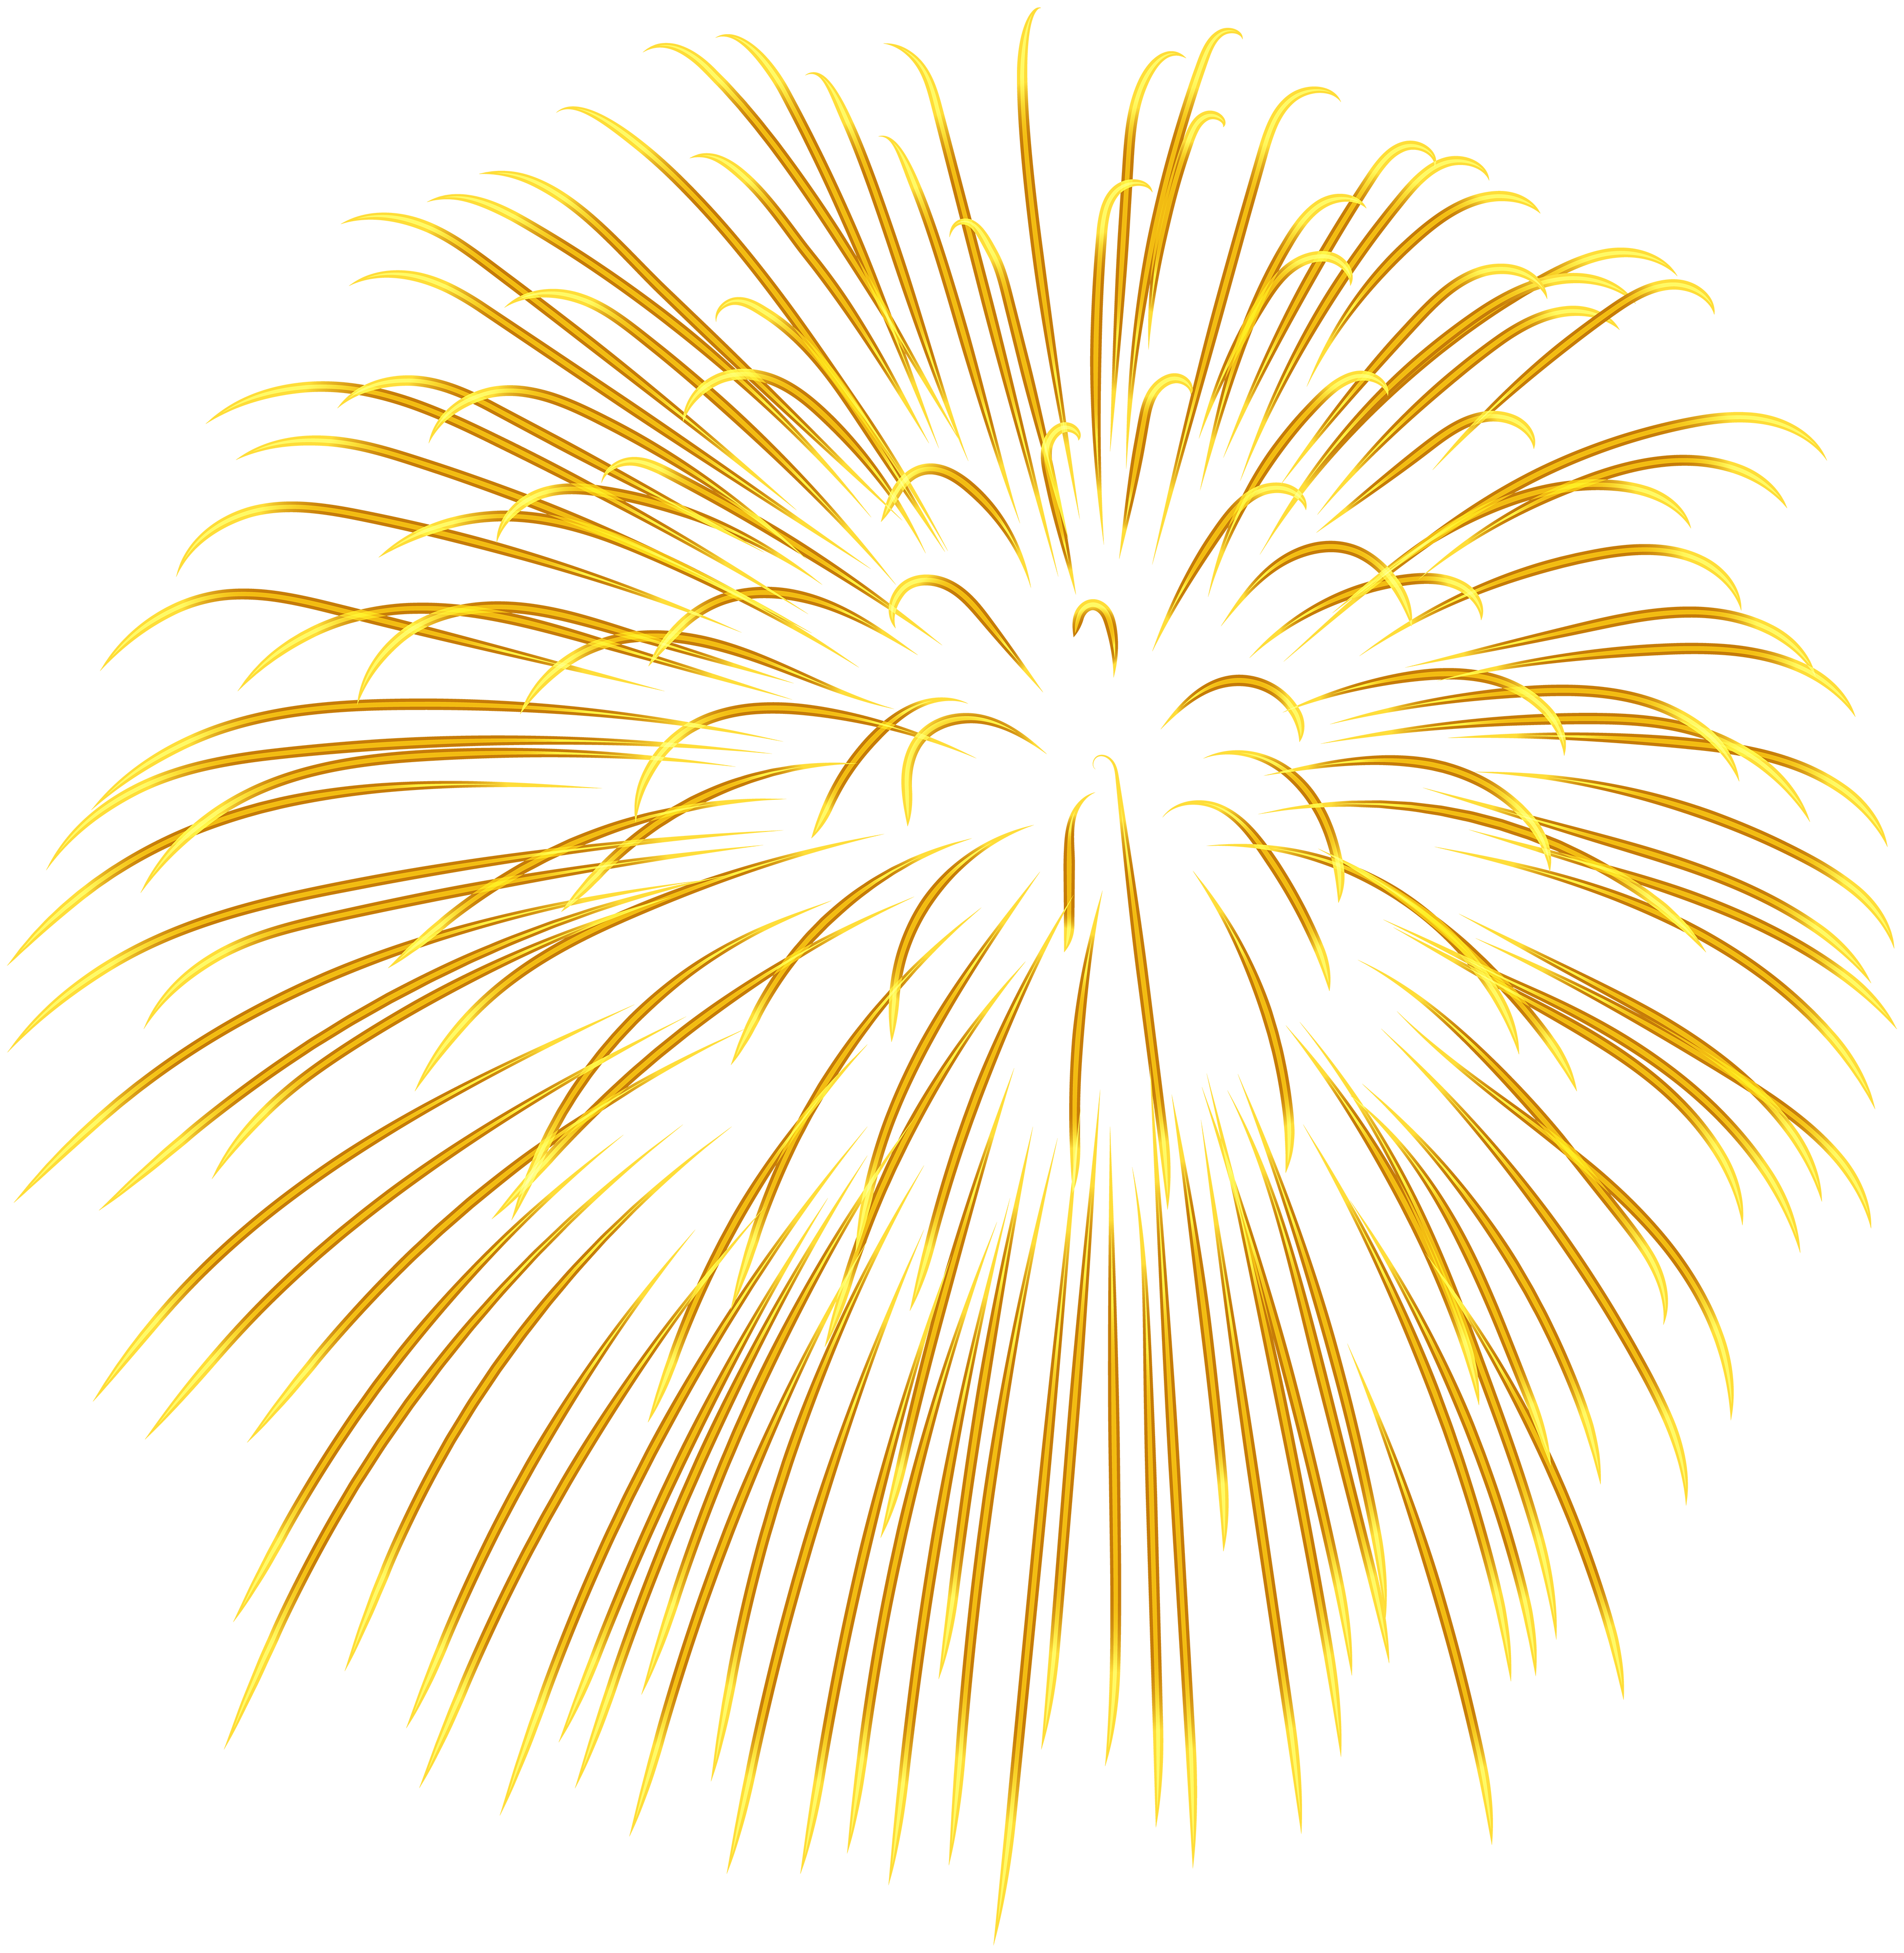 Fireworks heart clipart royalty free download Firework Yellow Transparent PNG Image | Gallery Yopriceville - High ... royalty free download